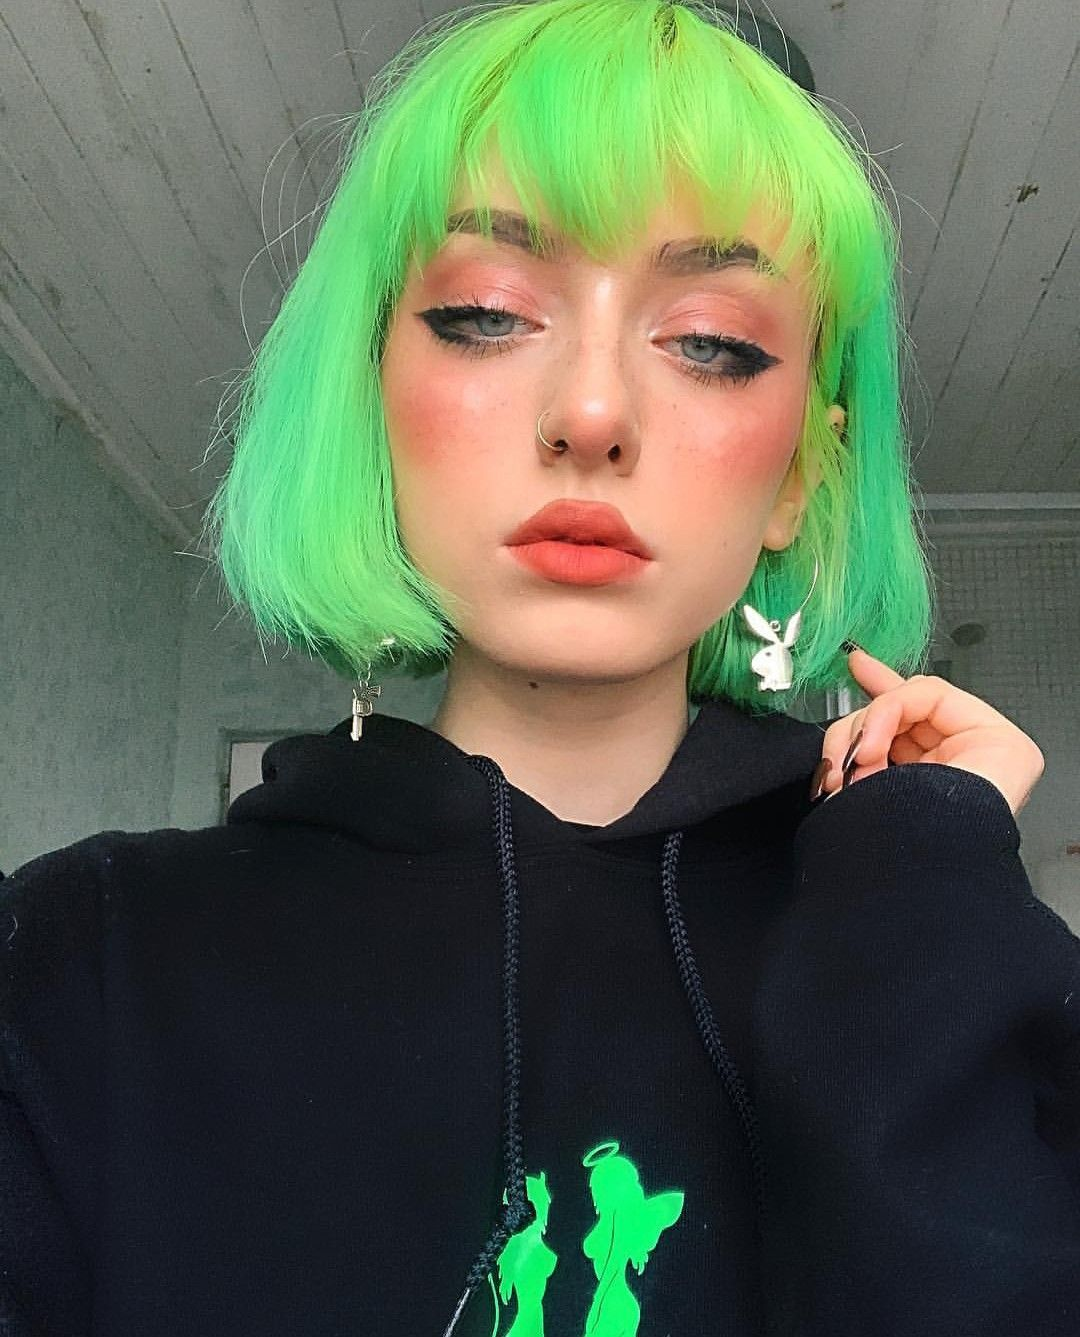 Follow Me For More Oppa Sadsaidd Aesthetic Hair Green Hair Hair Inspo Color